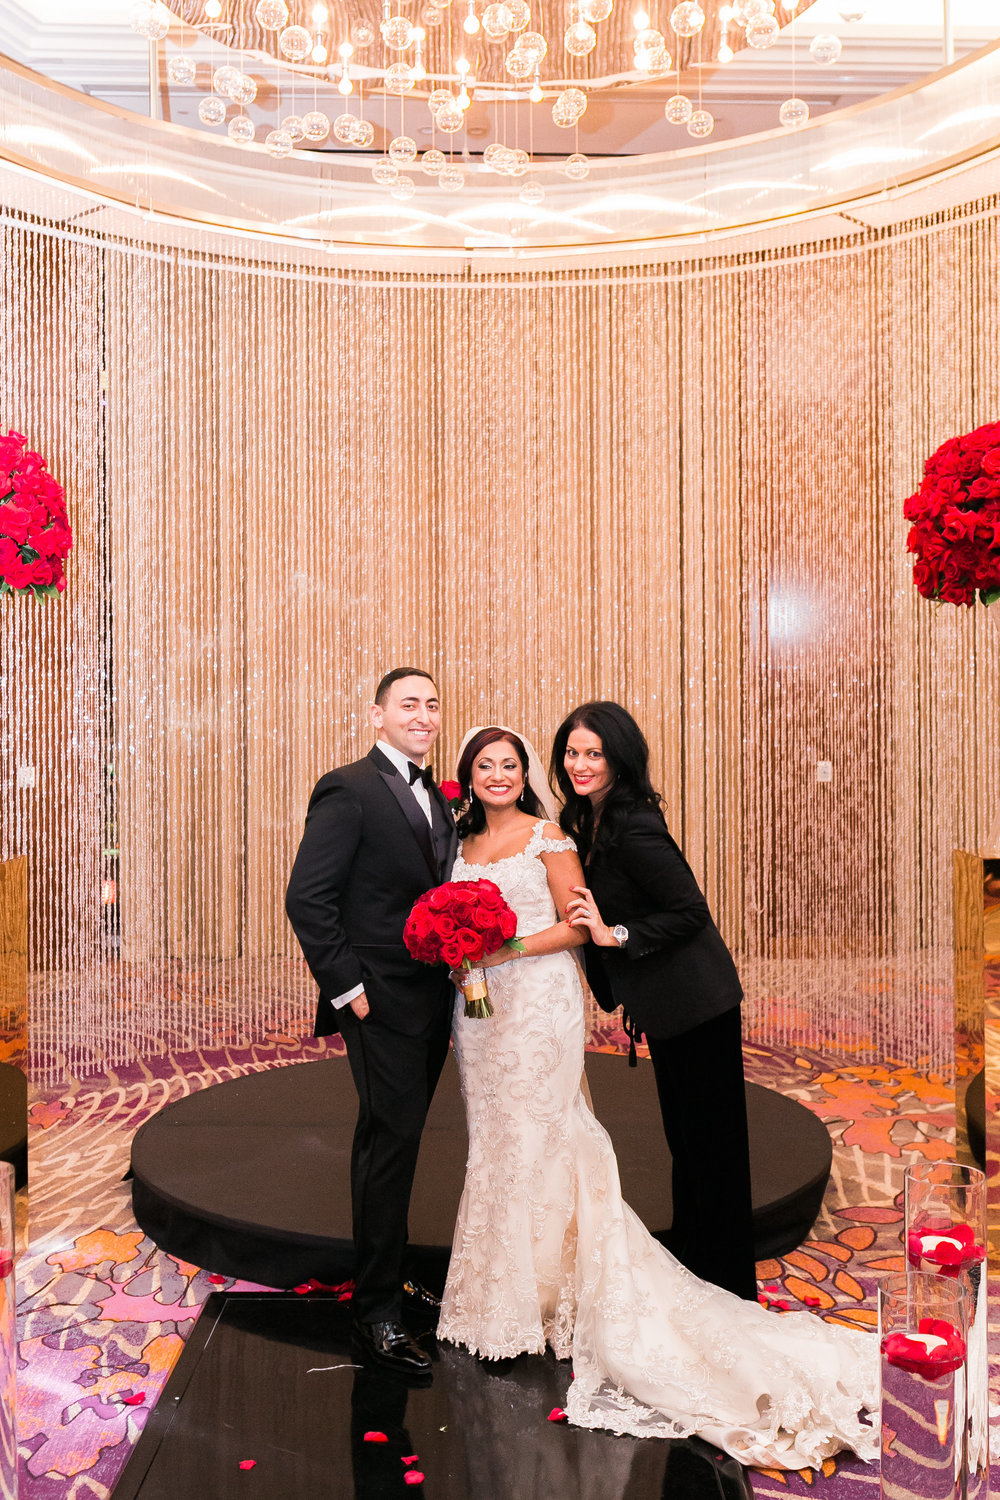 Bride and groom with their wedding planner.  Las Vegas Wedding Planner Andrea Eppolito shares this multicultural wedding.  Photo by J.Anne Photography. Wedding at Mandarin Oriental Las Vegas.  Decor by DBD Vegas.